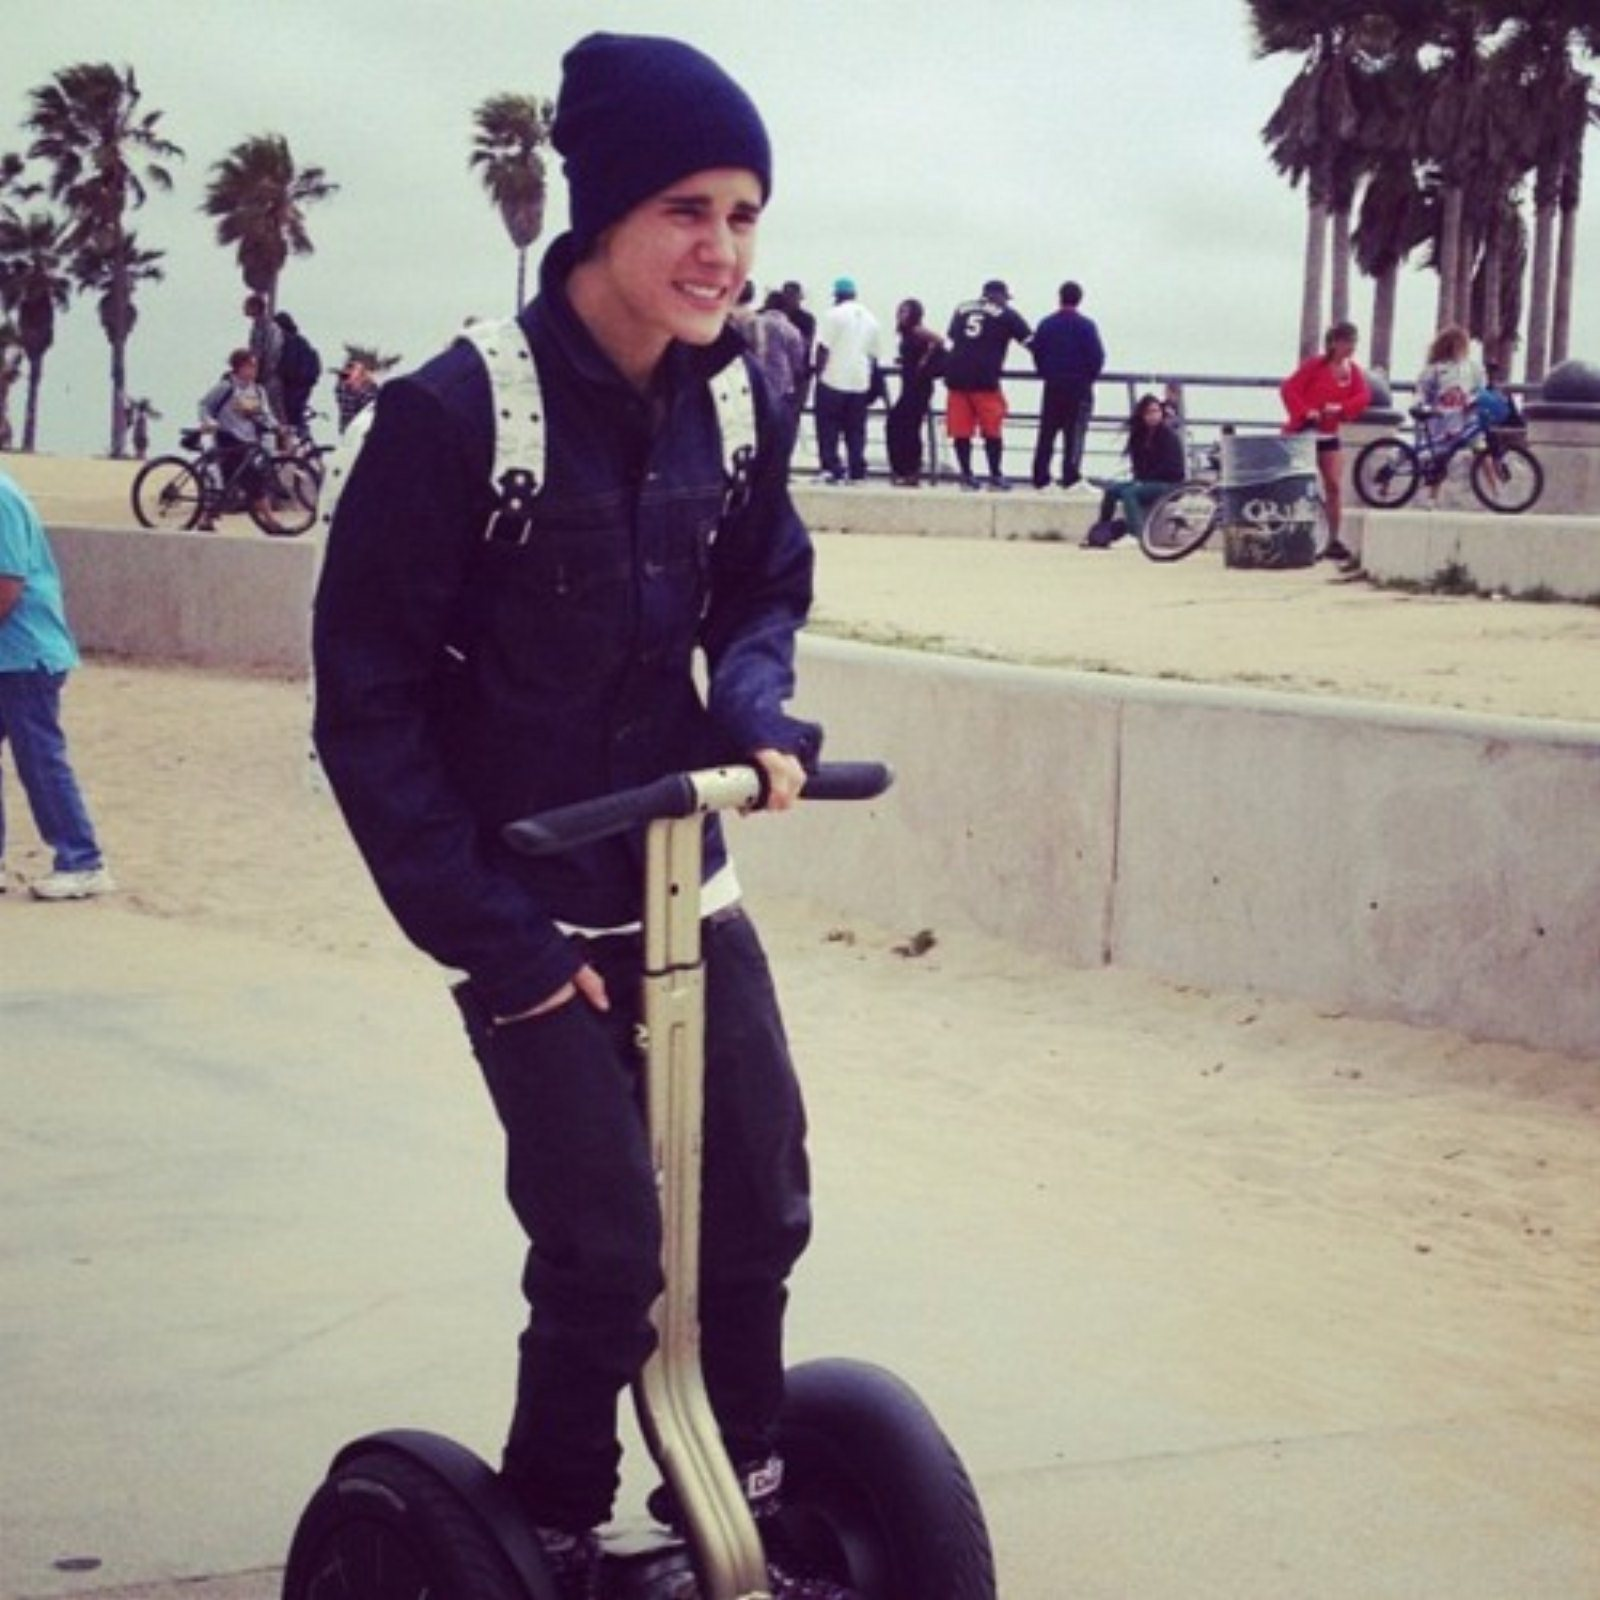 justin bieber,instagram 2012 - Justin Bieber Photo (30822856) - Fanpop